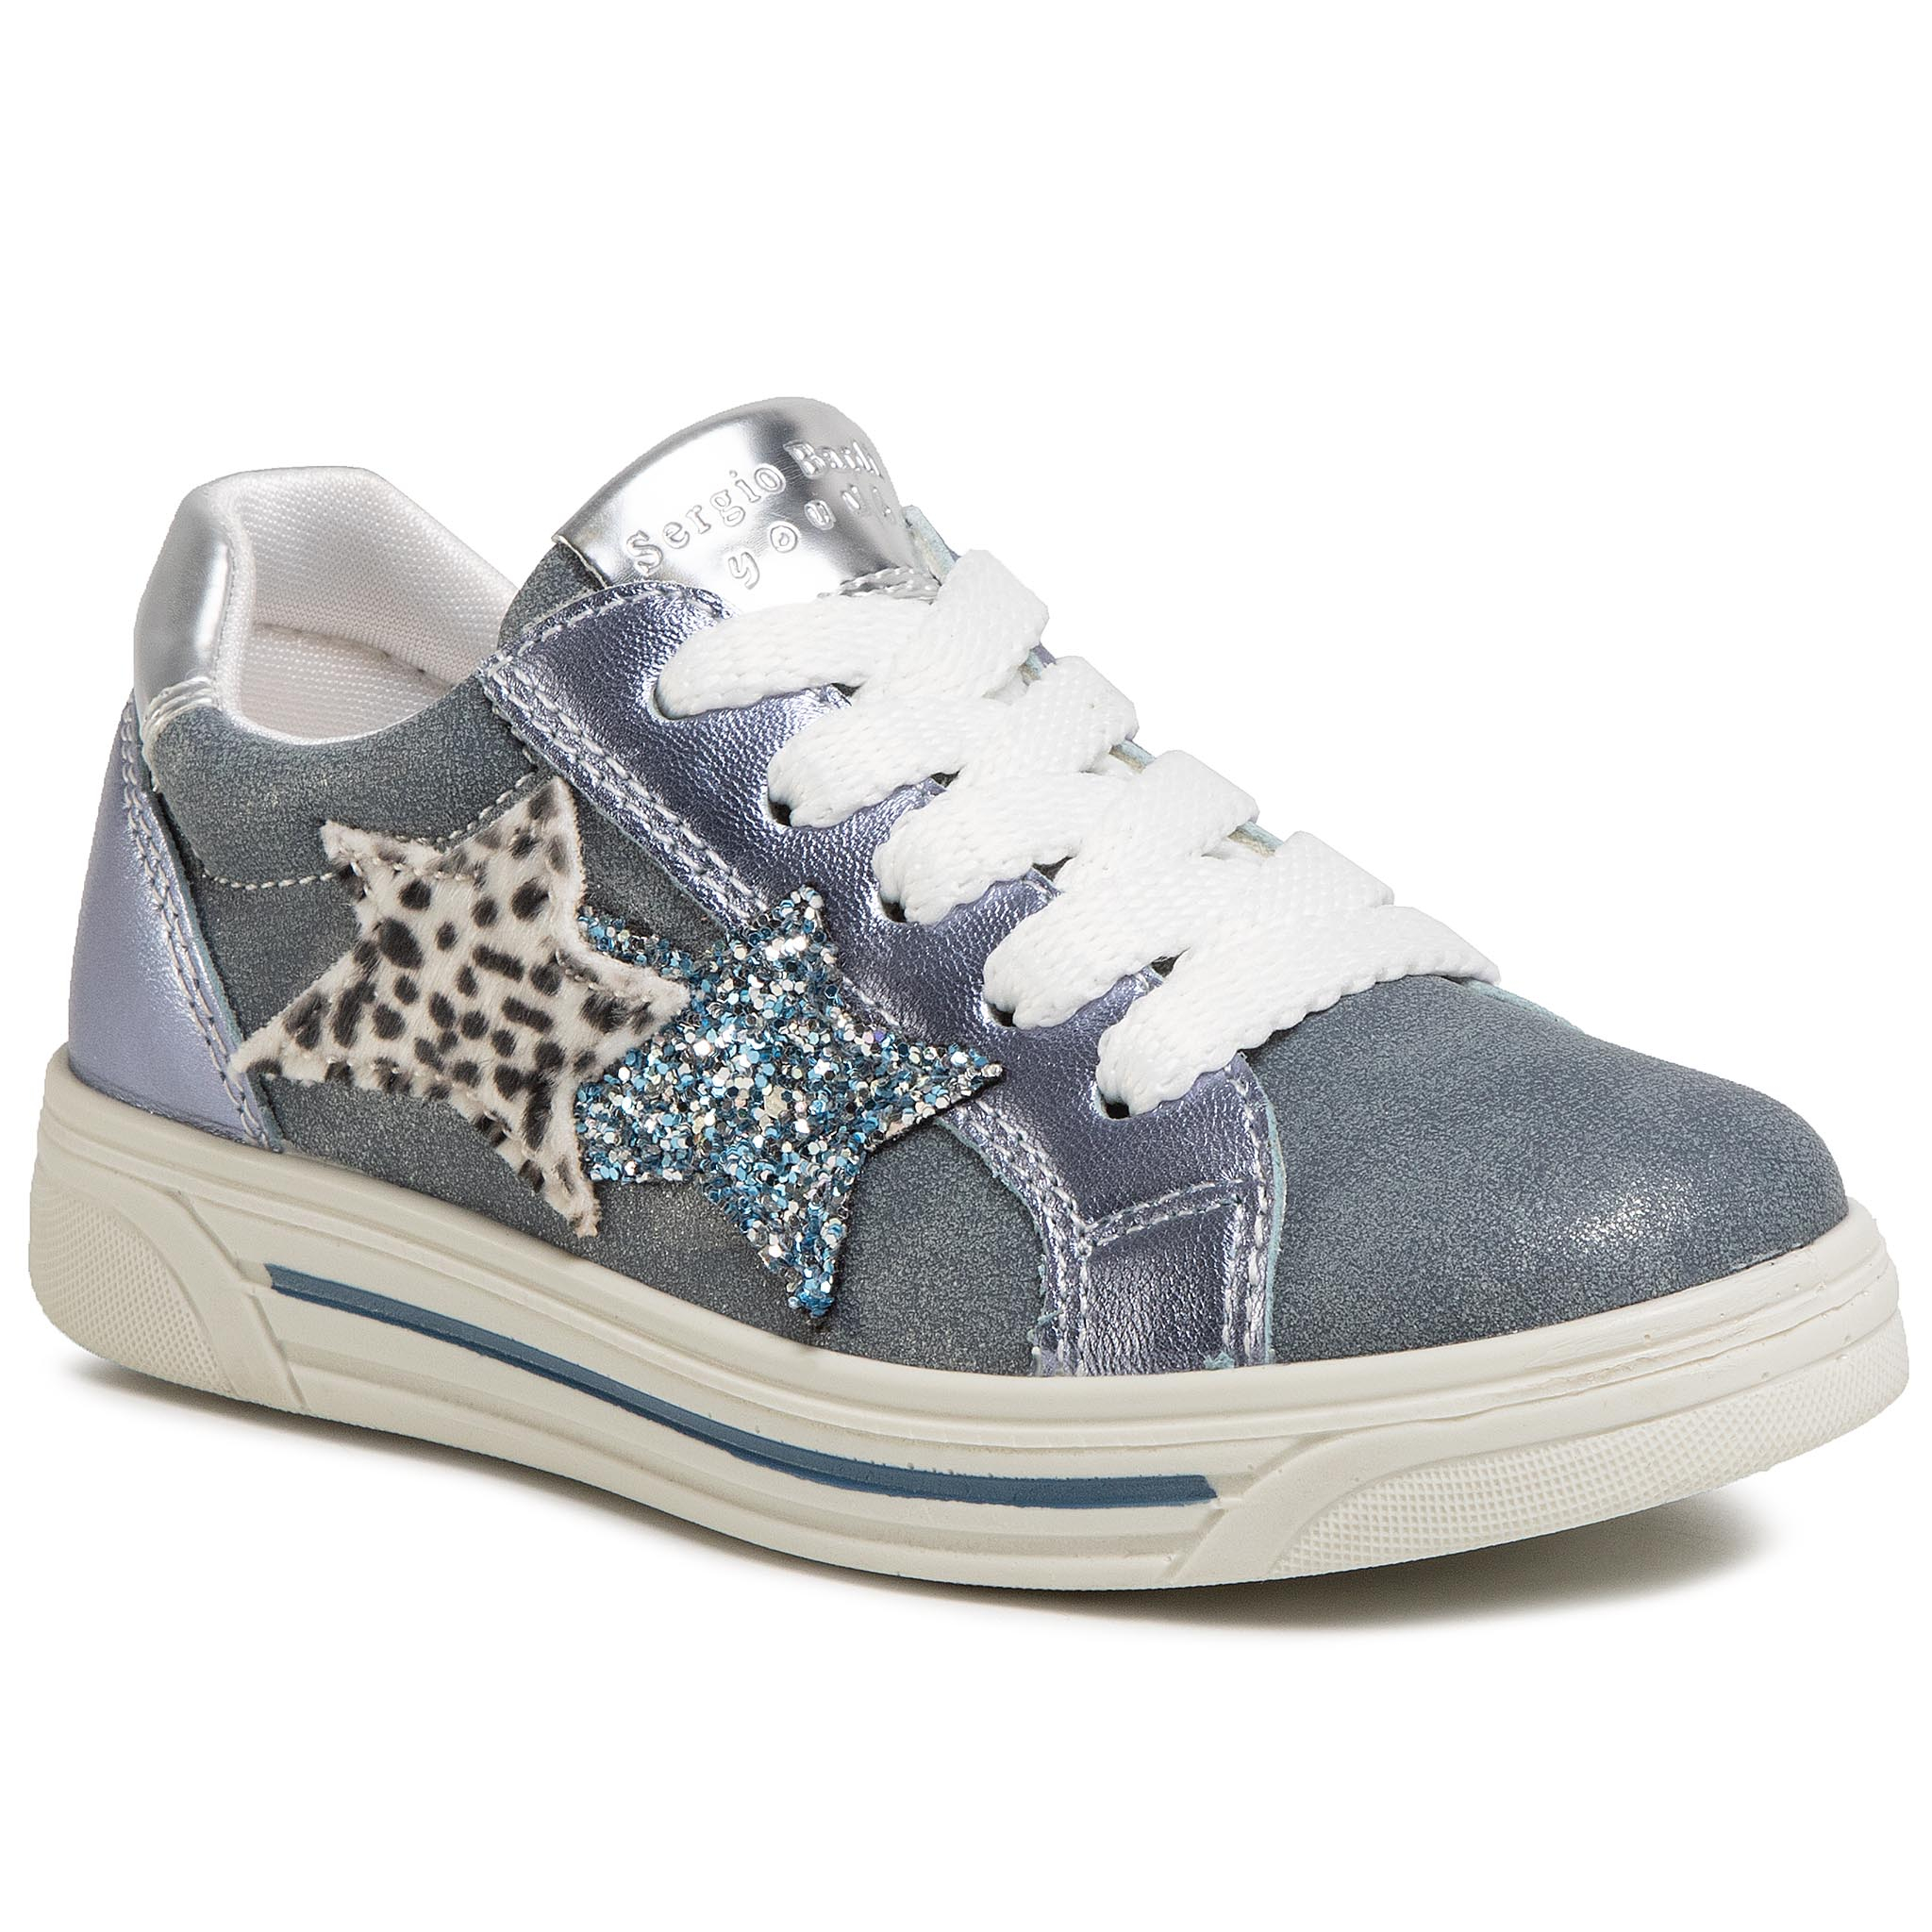 Sneakers SERGIO BARDI YOUNG - SBY-02-03-000026 613